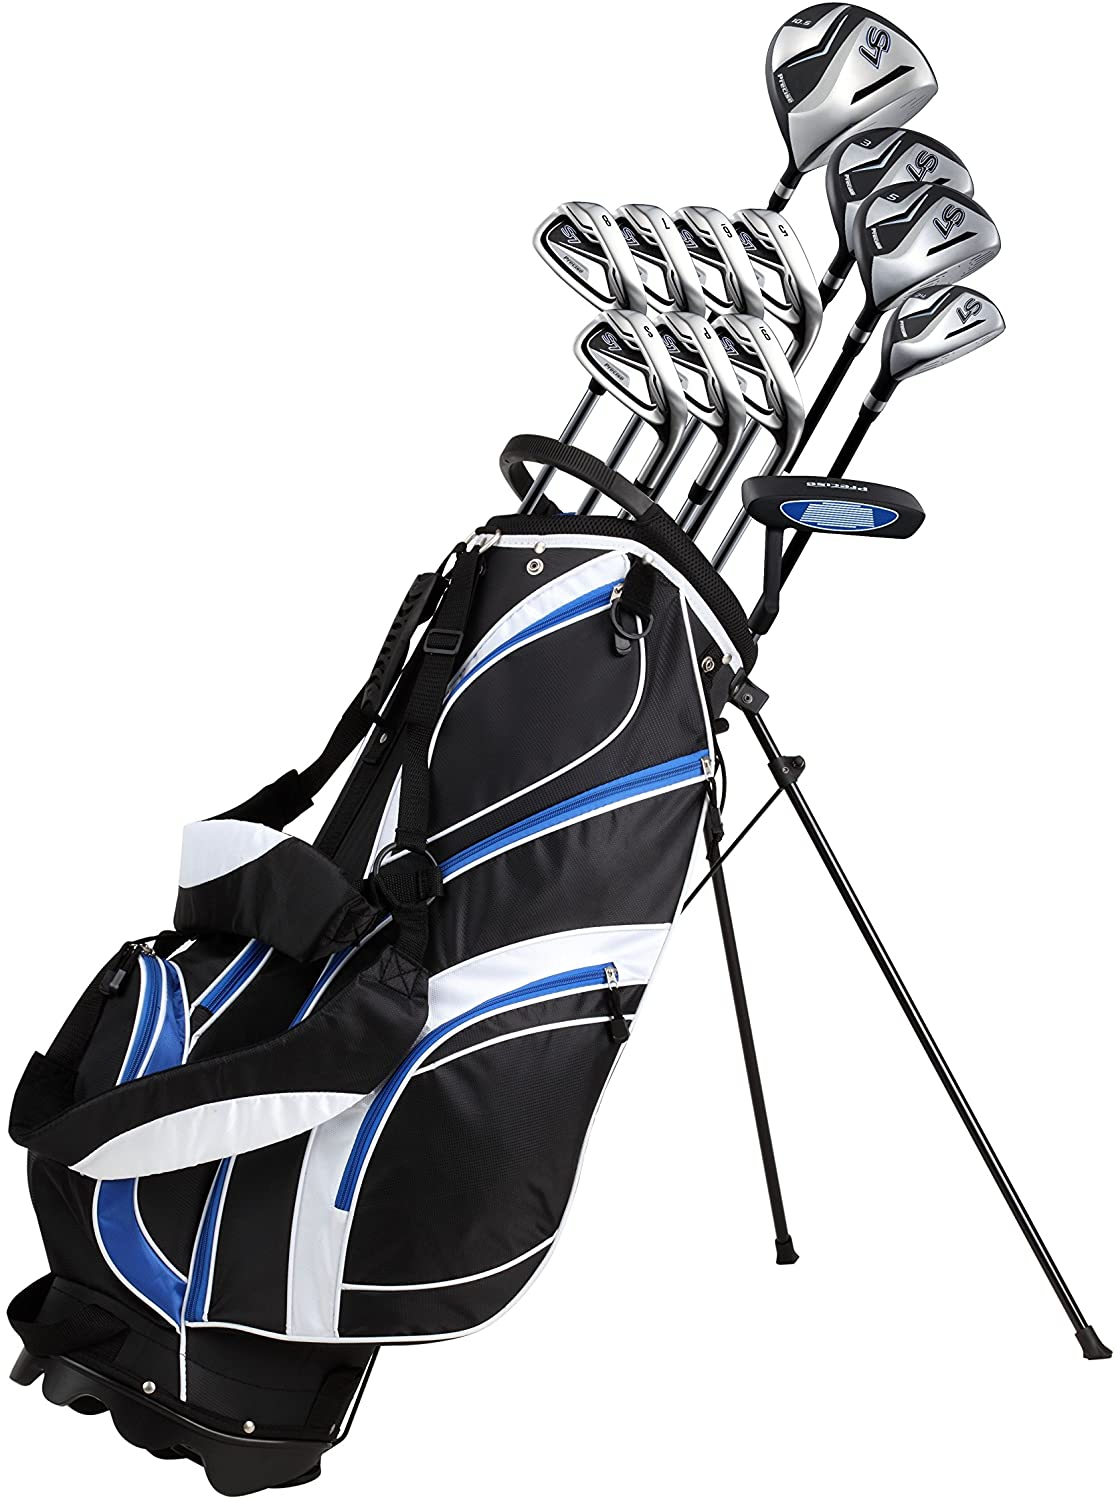 18-Piece Men's Complete Golf Club Set Precise Golf